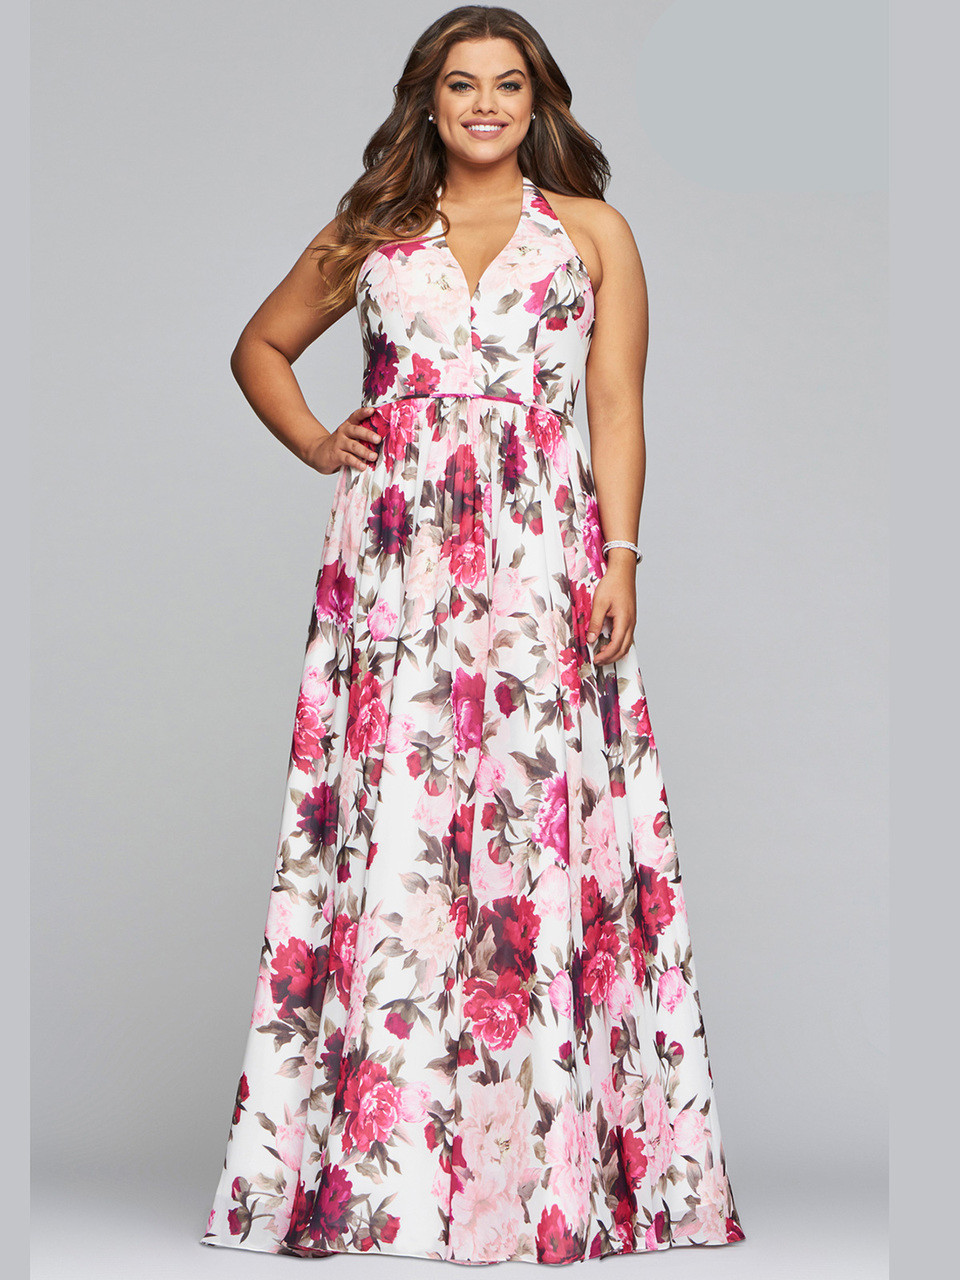 327657a5118 faviana floral chiffon prom dress 9468 with lace up back